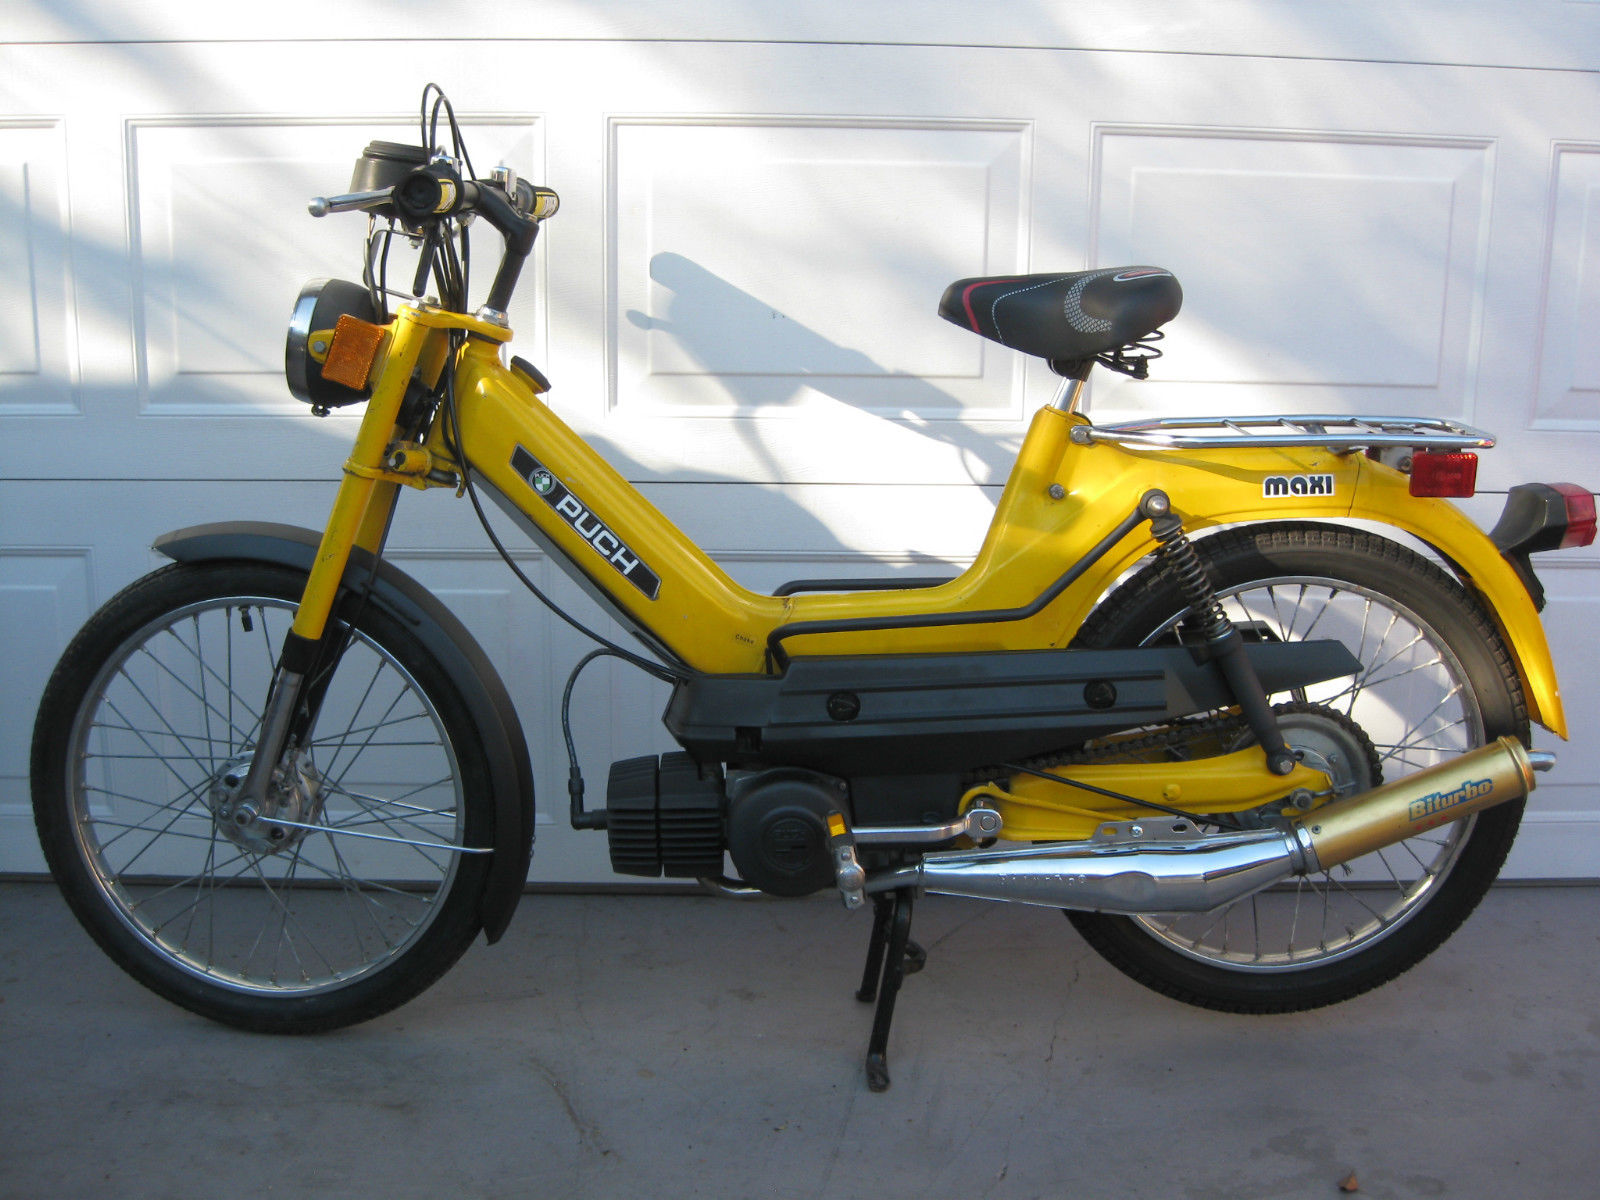 1977 Puch Maxi E50 Single Speed 1978 Luxe Za50 Wiring Diagram 78 Moped With Biturbo Muffler